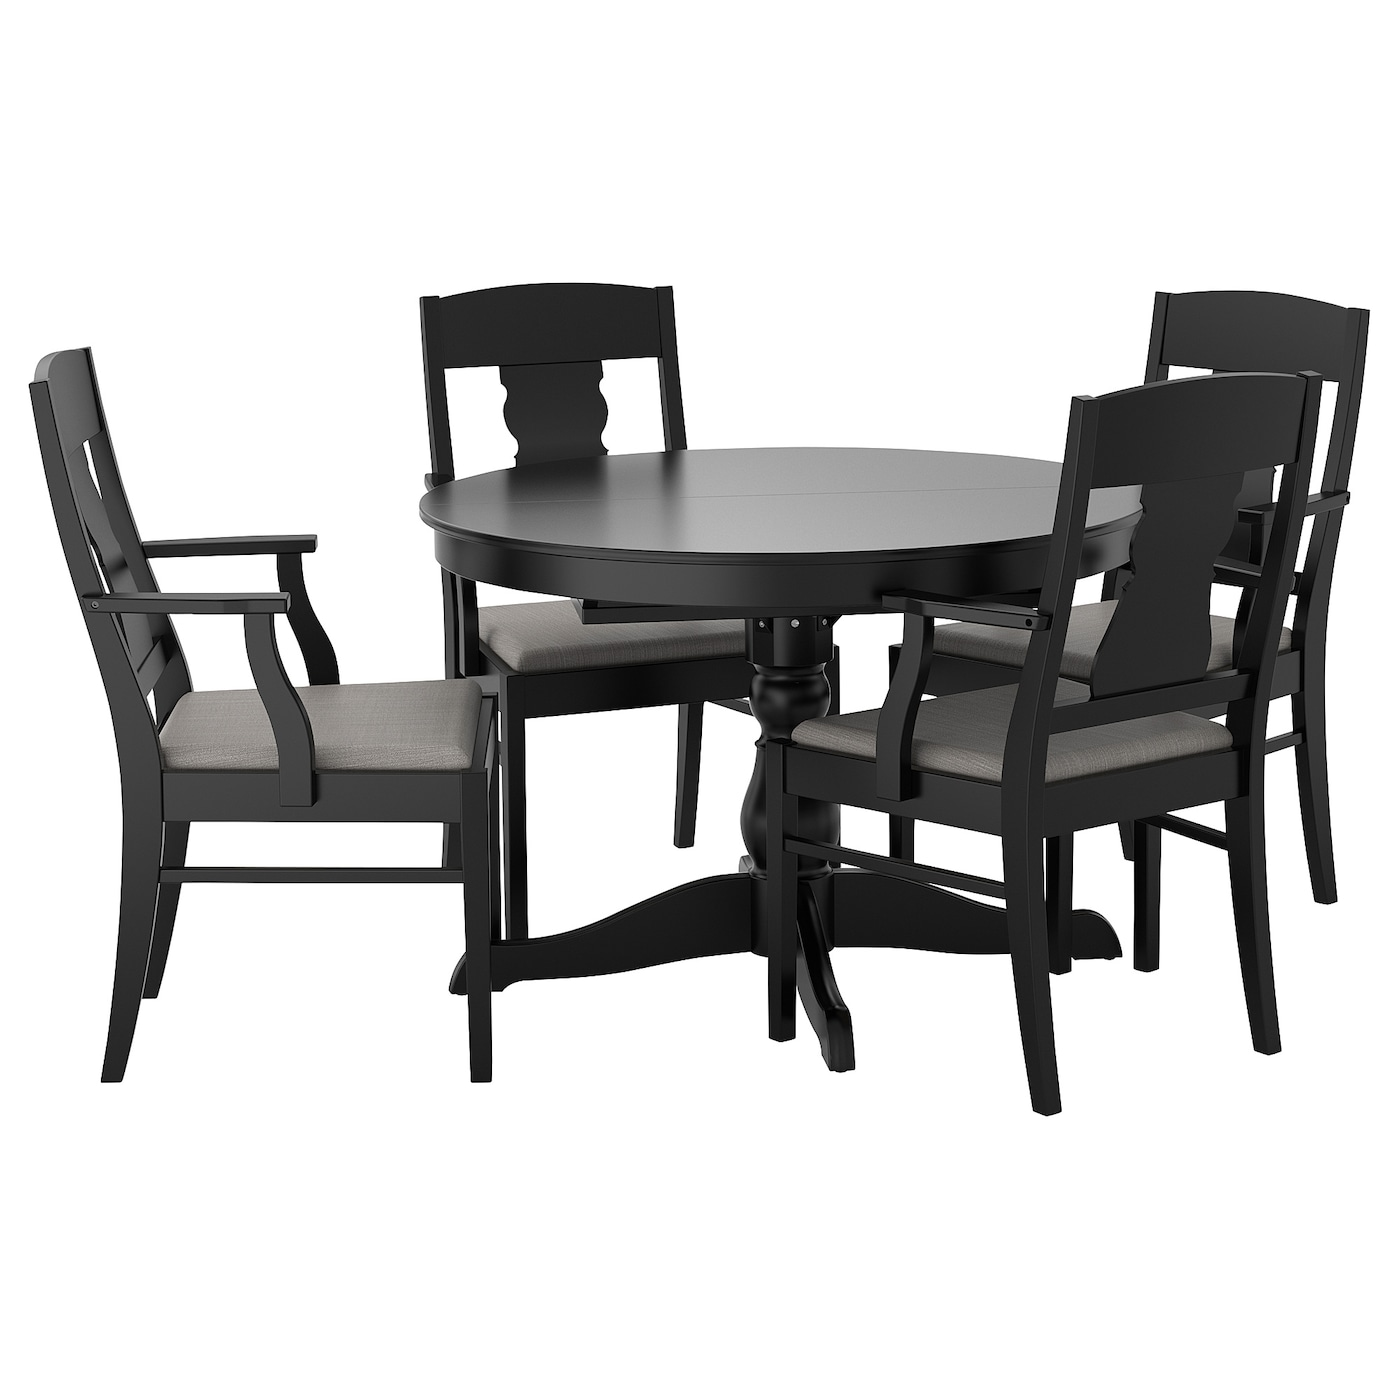 ingatorp ingatorp table and 4 chairs black 100 155 cm ikea. Black Bedroom Furniture Sets. Home Design Ideas